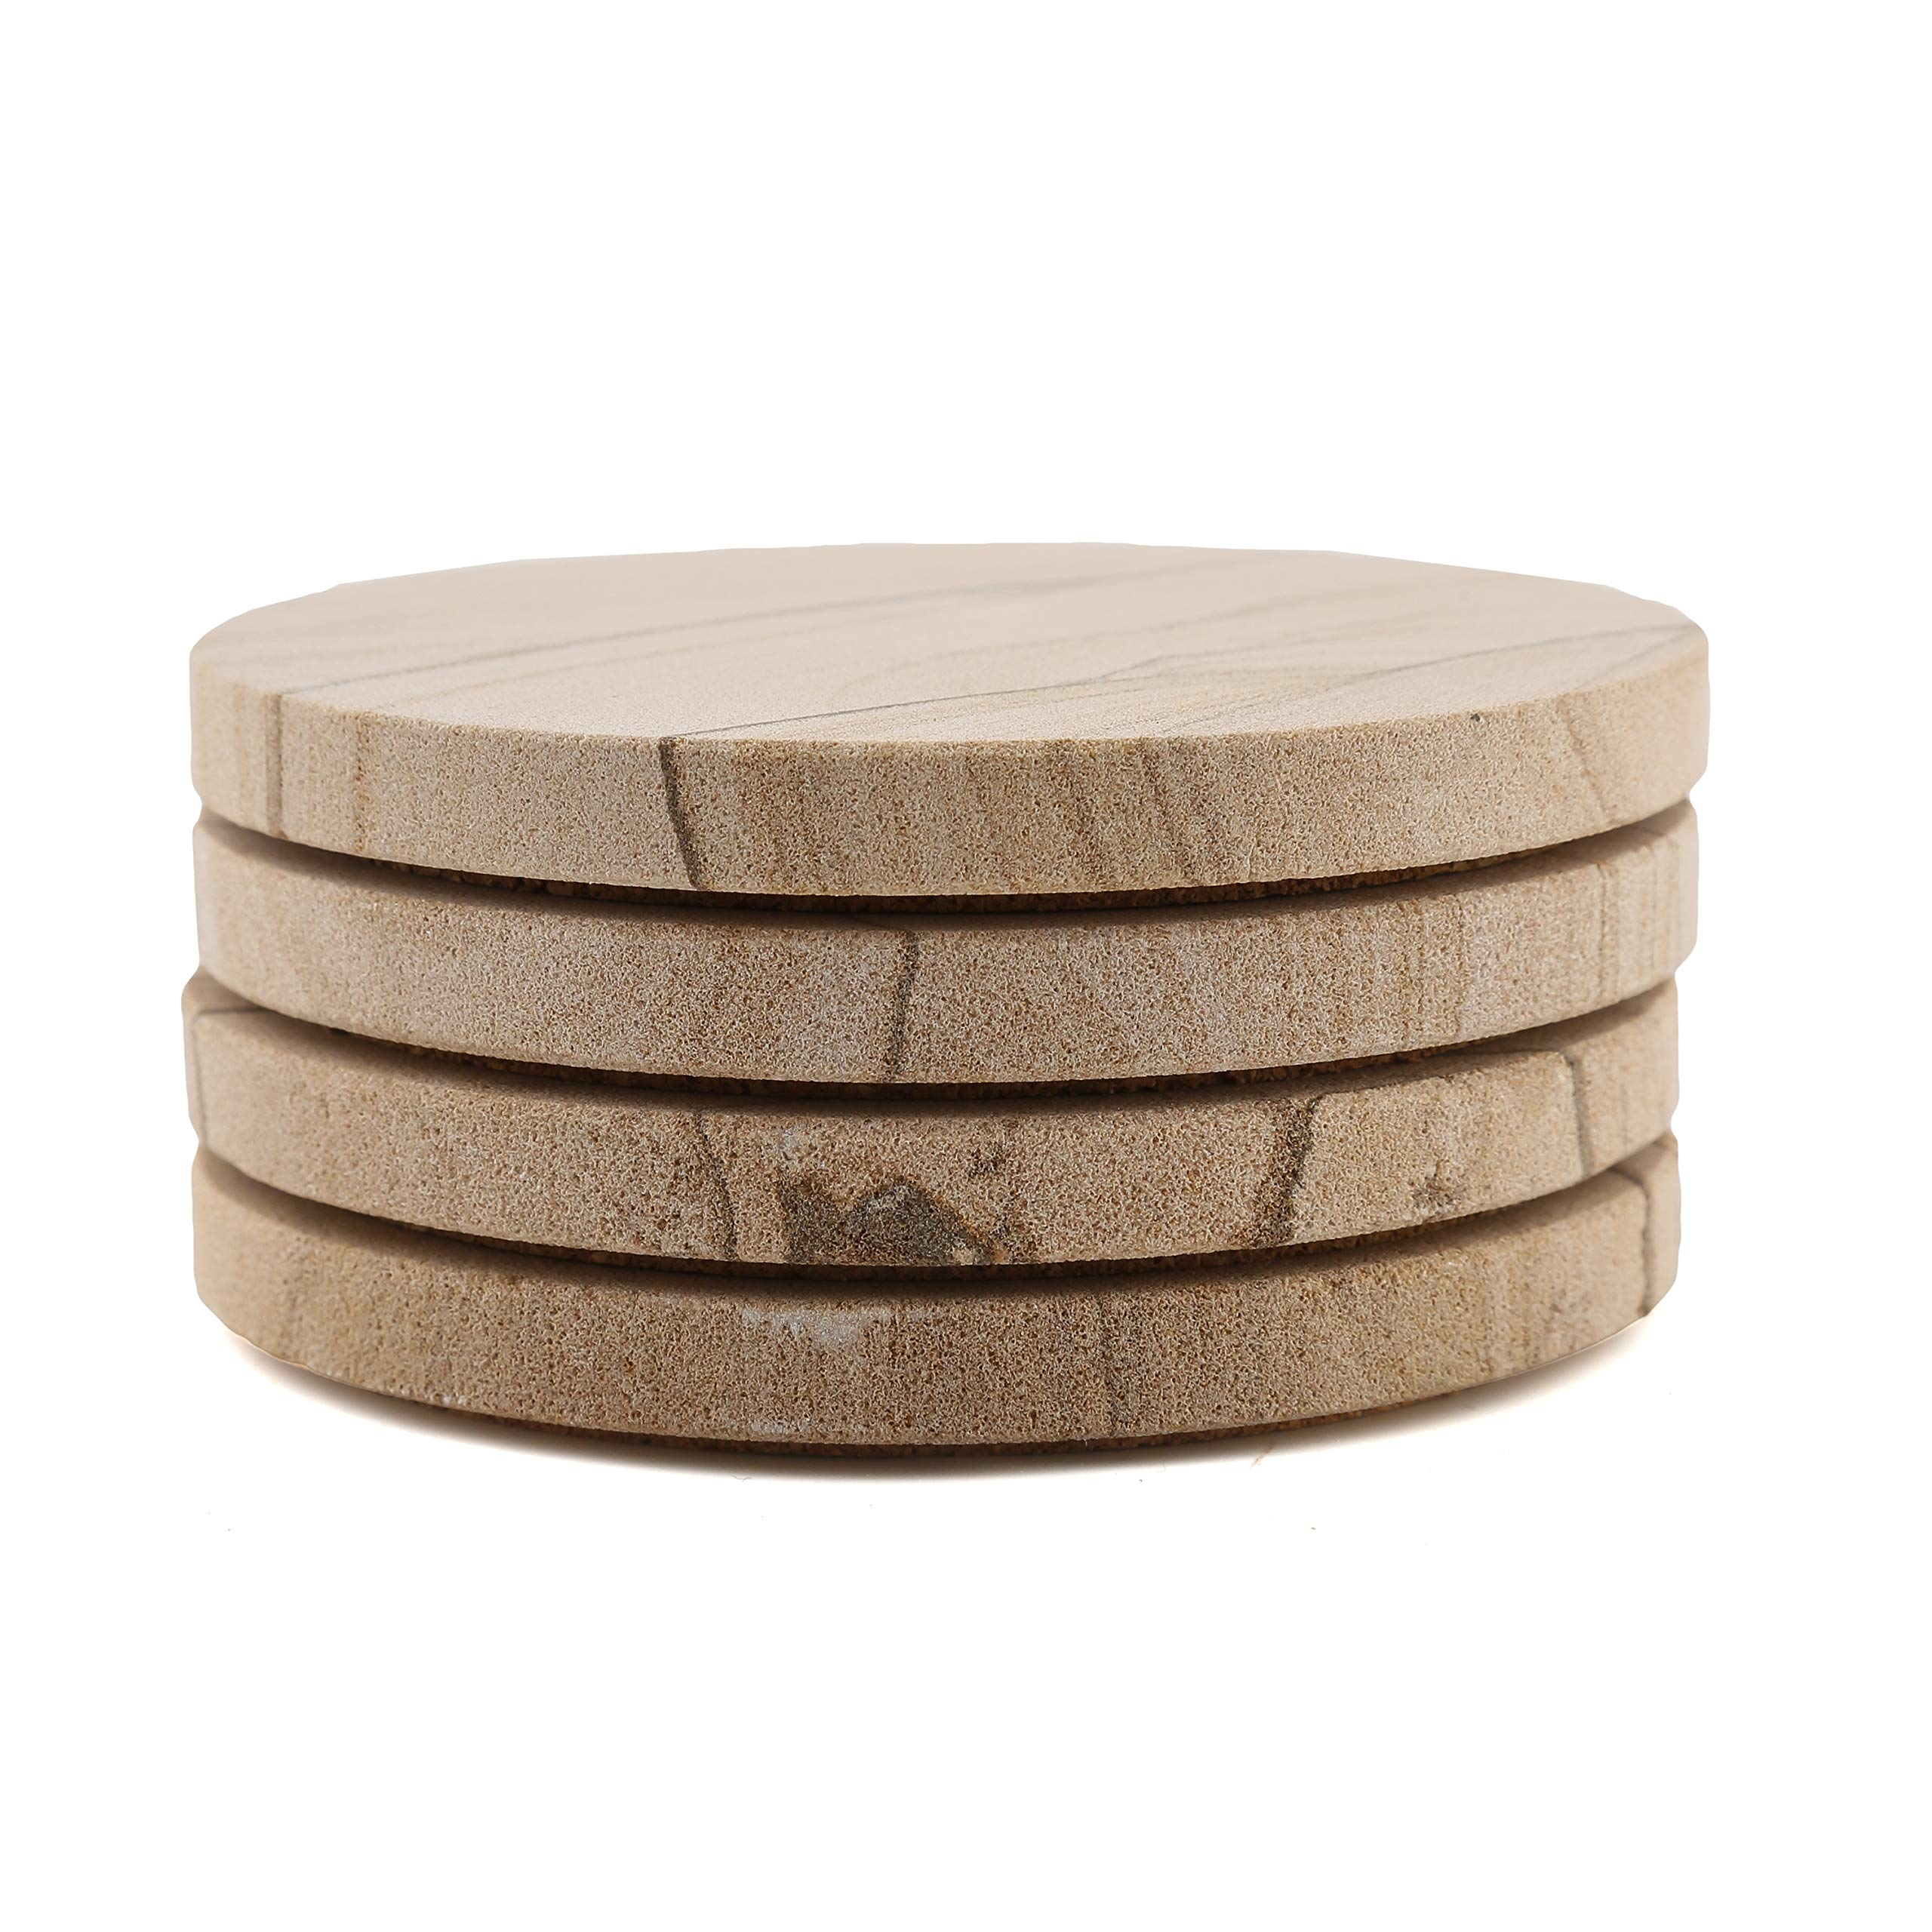 Thirstystone Sandstone Wood Absorbent Coaster and Holder, 4 inch round, Desert Sand w by Thirstystone